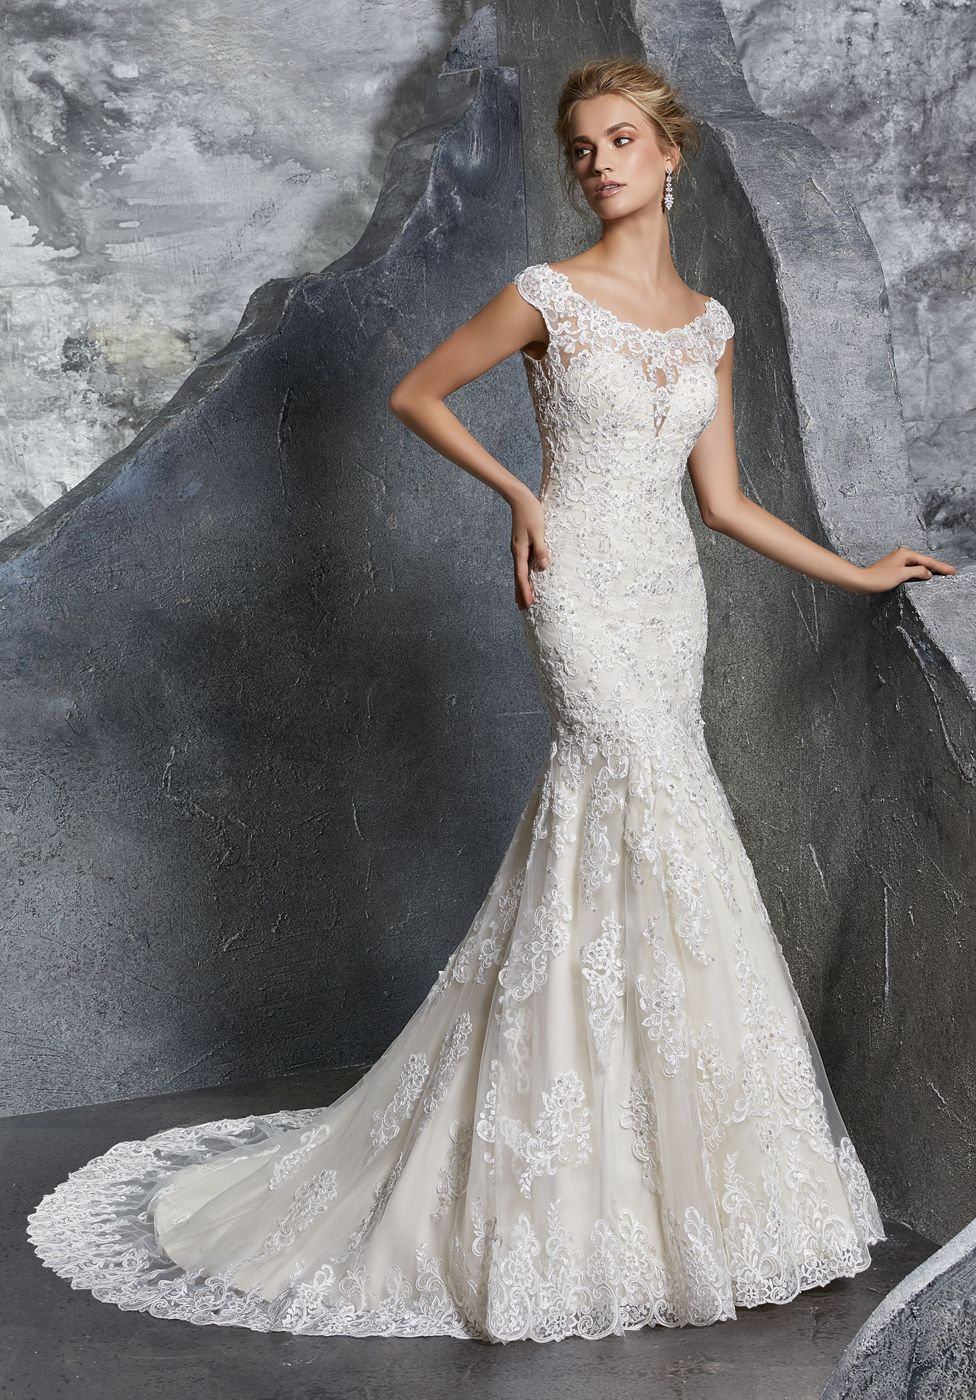 Mori Lee 8219 Keely Cap Sleeve Trumpet Style Bridal Dress Mori Lee Wedding Dress Fit And Flare Wedding Dress Wedding Dress Styles [ 1400 x 976 Pixel ]